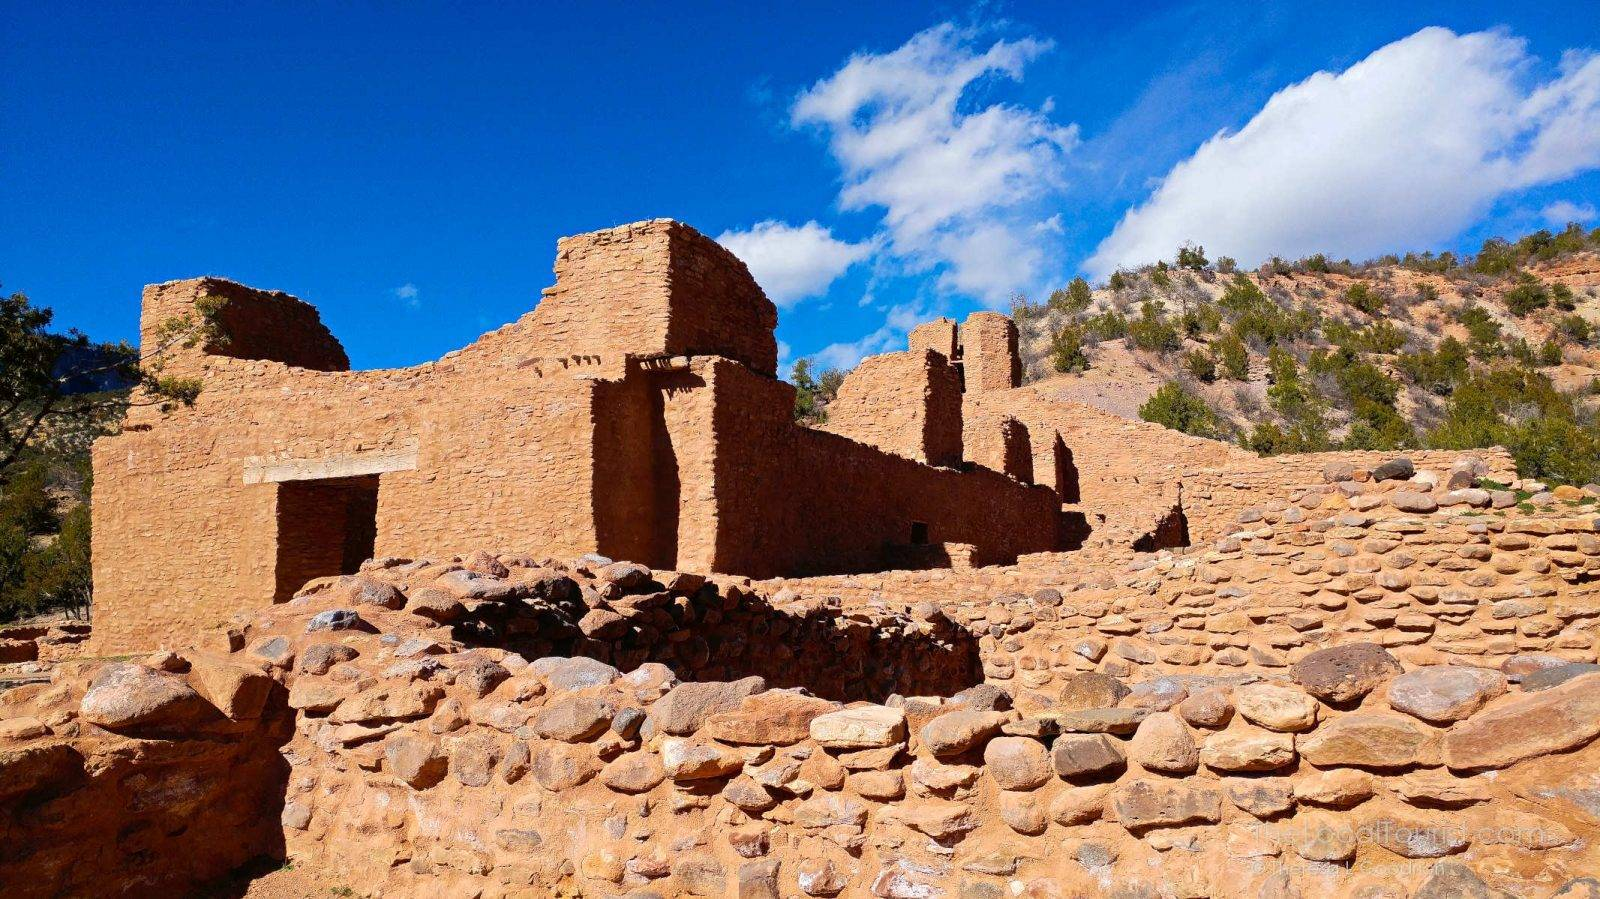 The past is present at the Jemez Historic Site in New Mexico